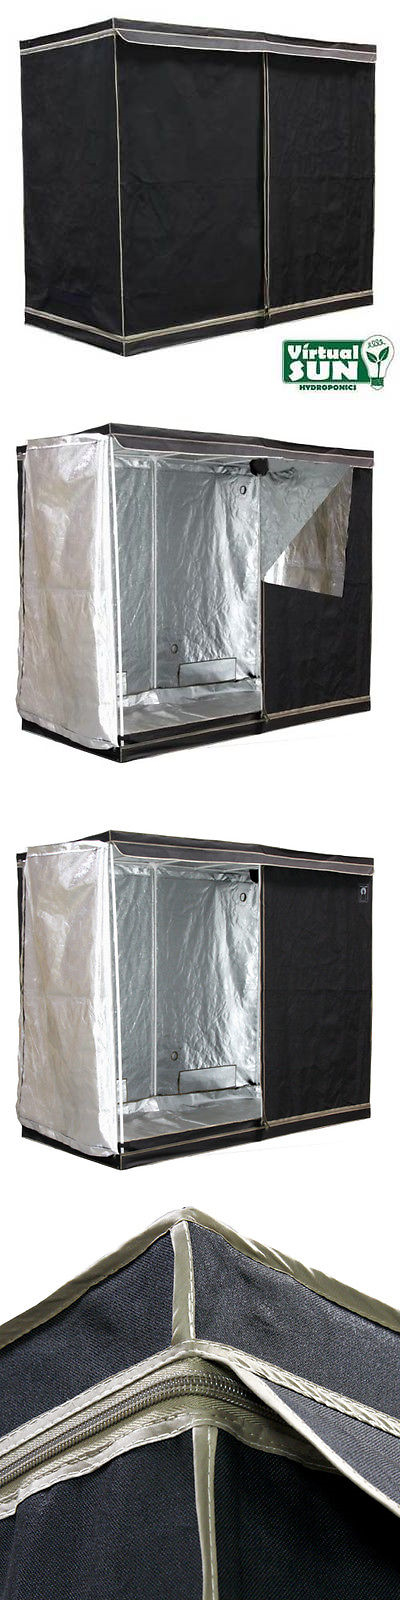 Nutrients pH and Supplements 178992 Virtual Sun Reflective Mylar Hydroponic Plant 96X48x78 Grow Tent Box & Nutrients pH and Supplements 178992: Virtual Sun Reflective Mylar ...